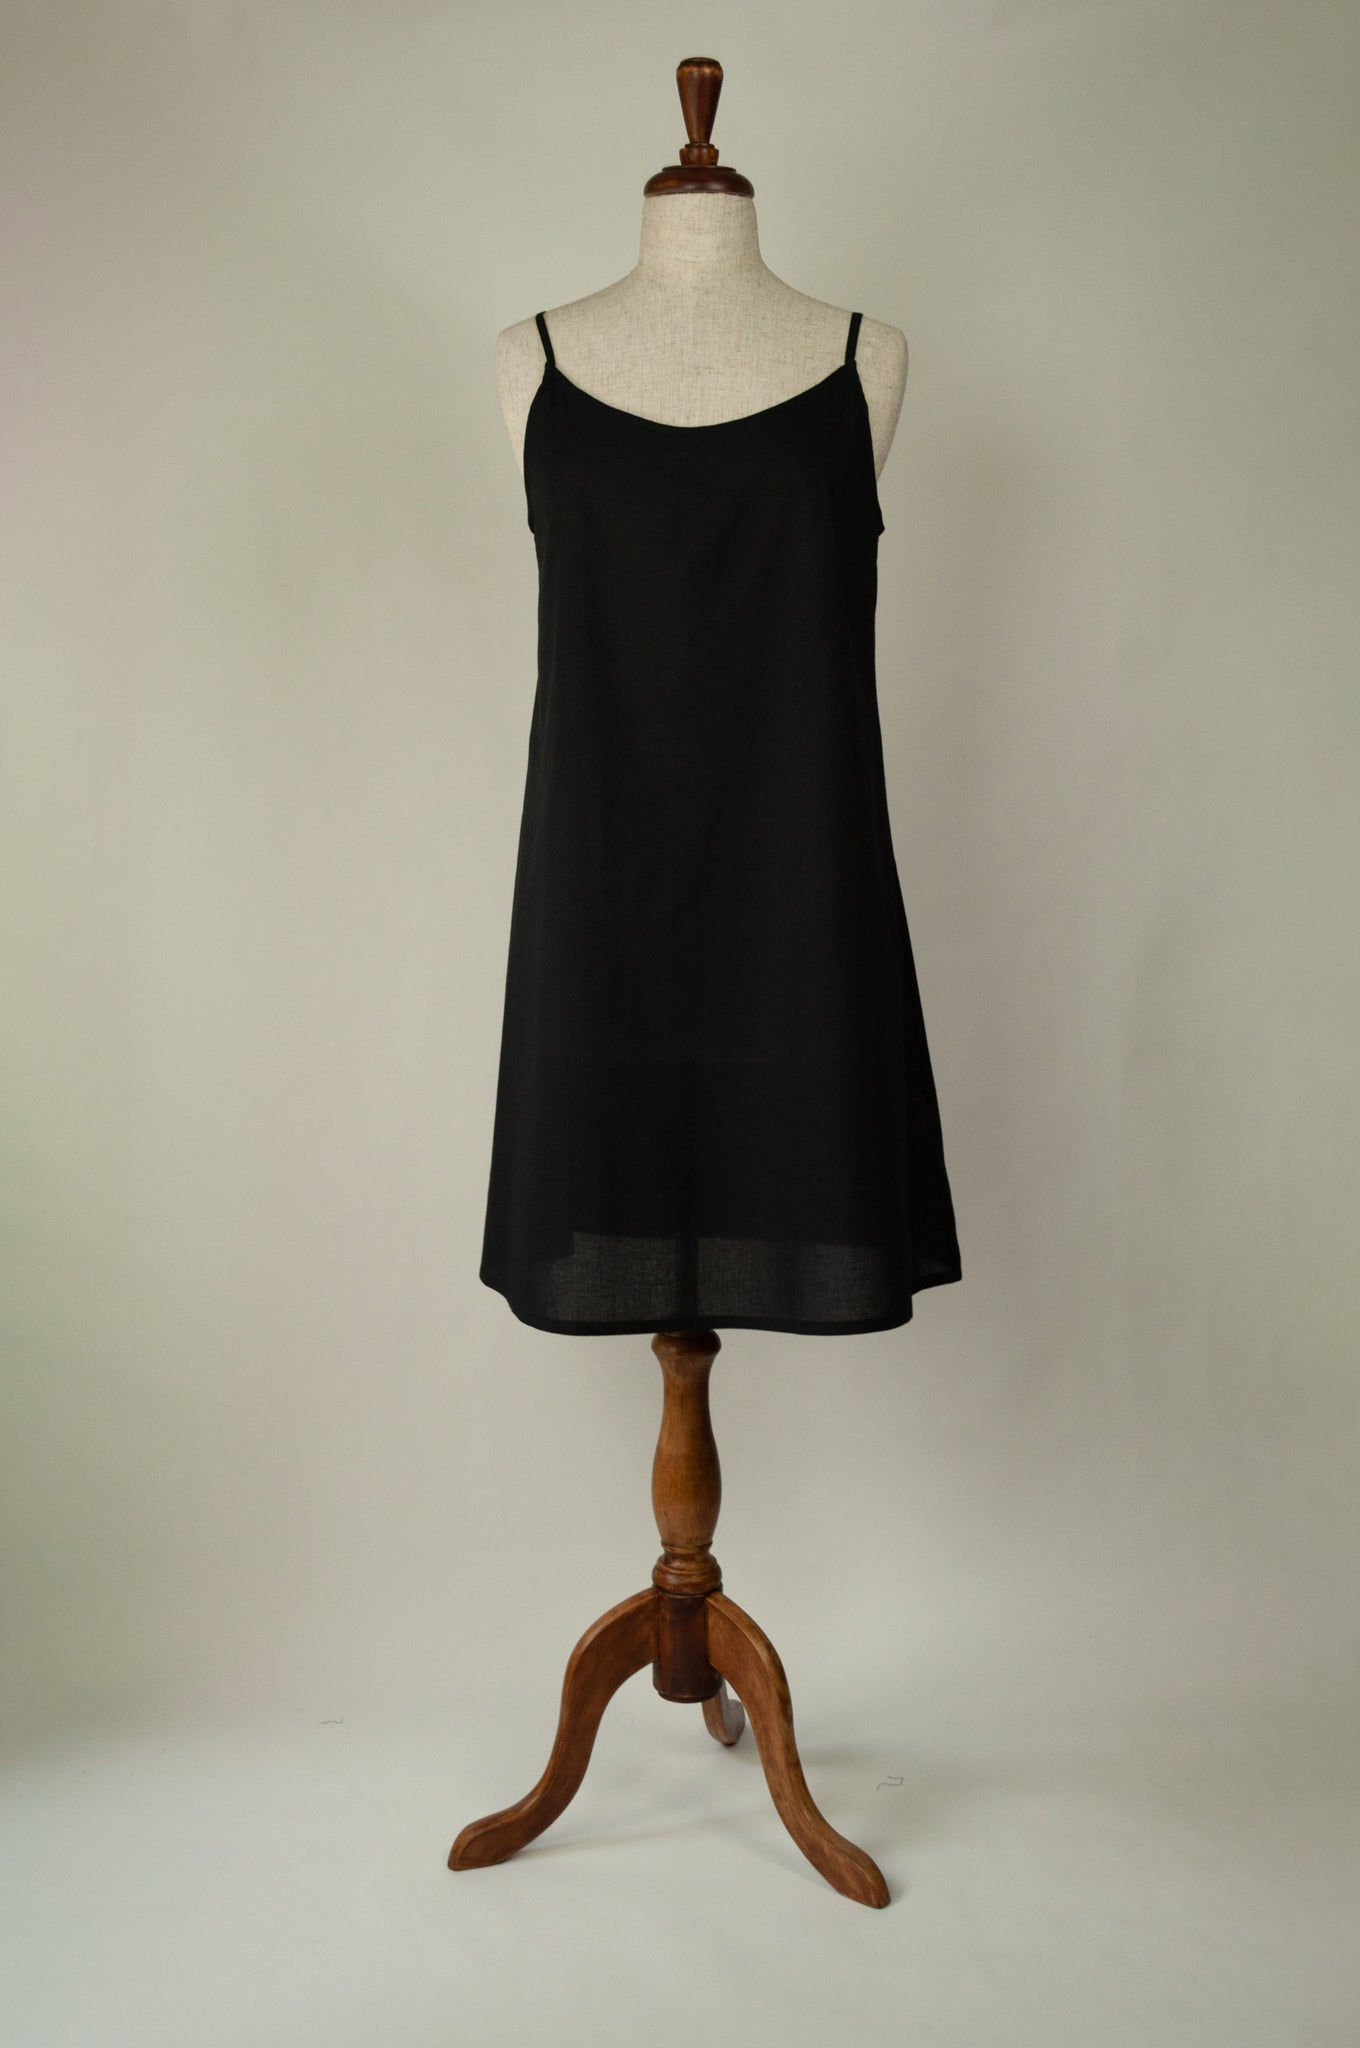 Cotton slip - black